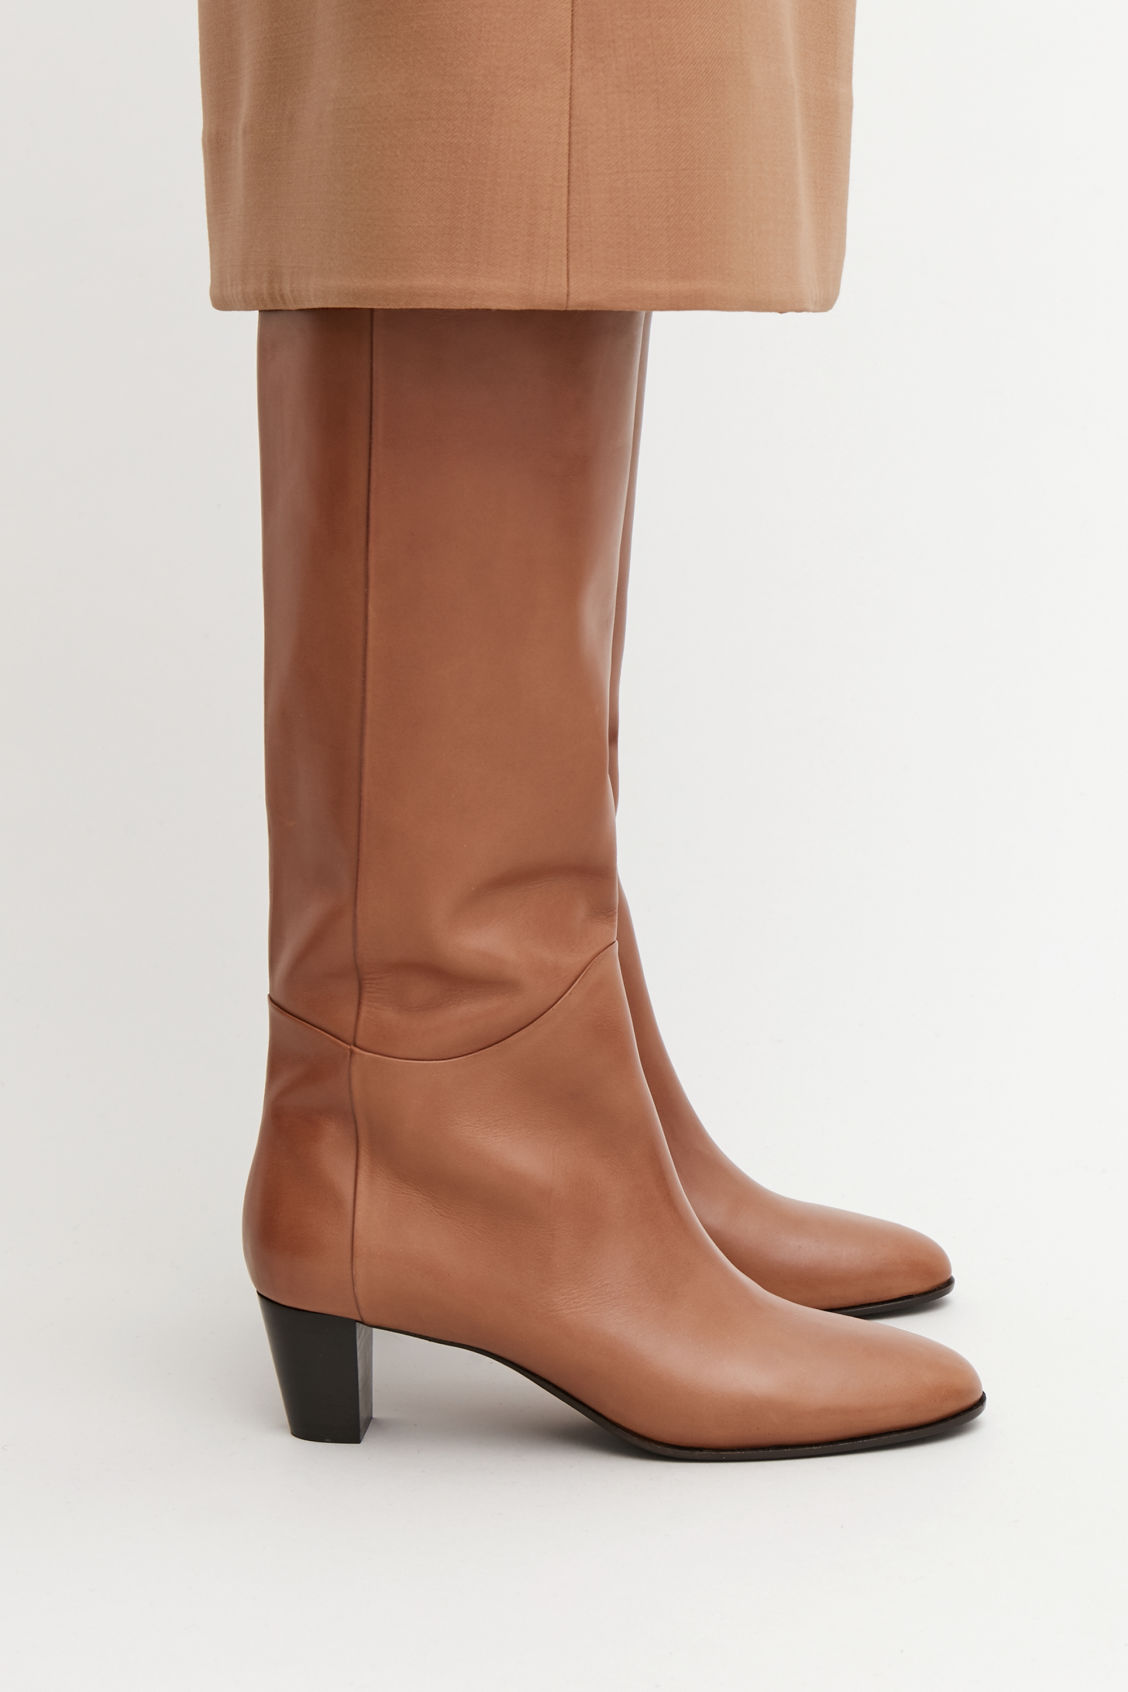 Detailed image of Cos knee-high leather boots in beige